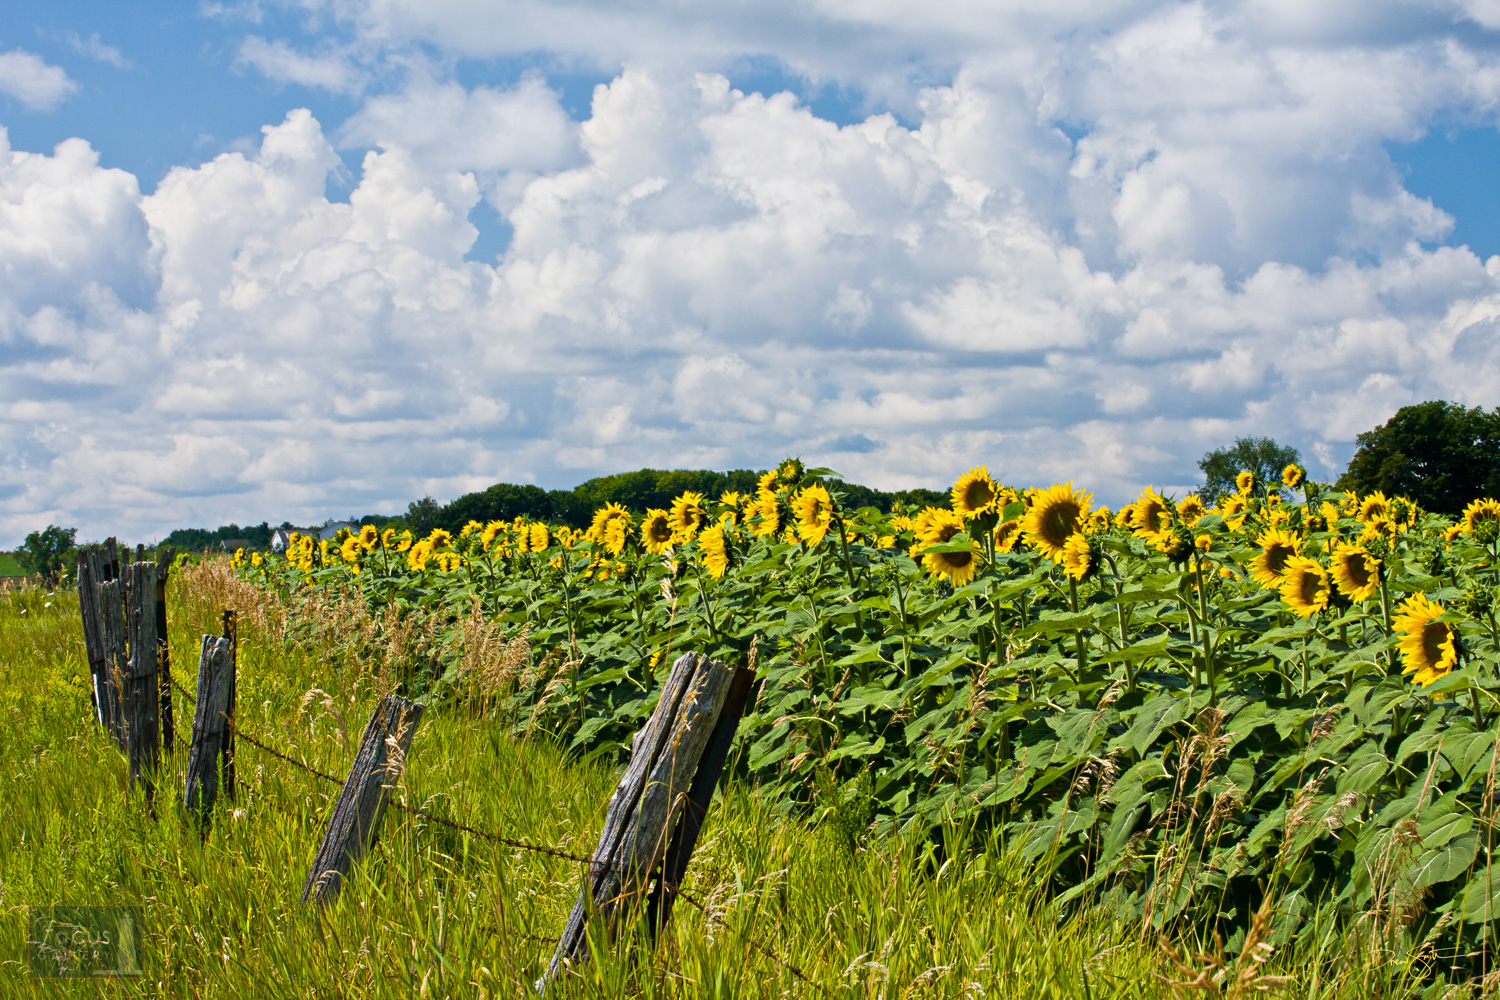 Field of sunflowers with puffy white clouds in the sky.